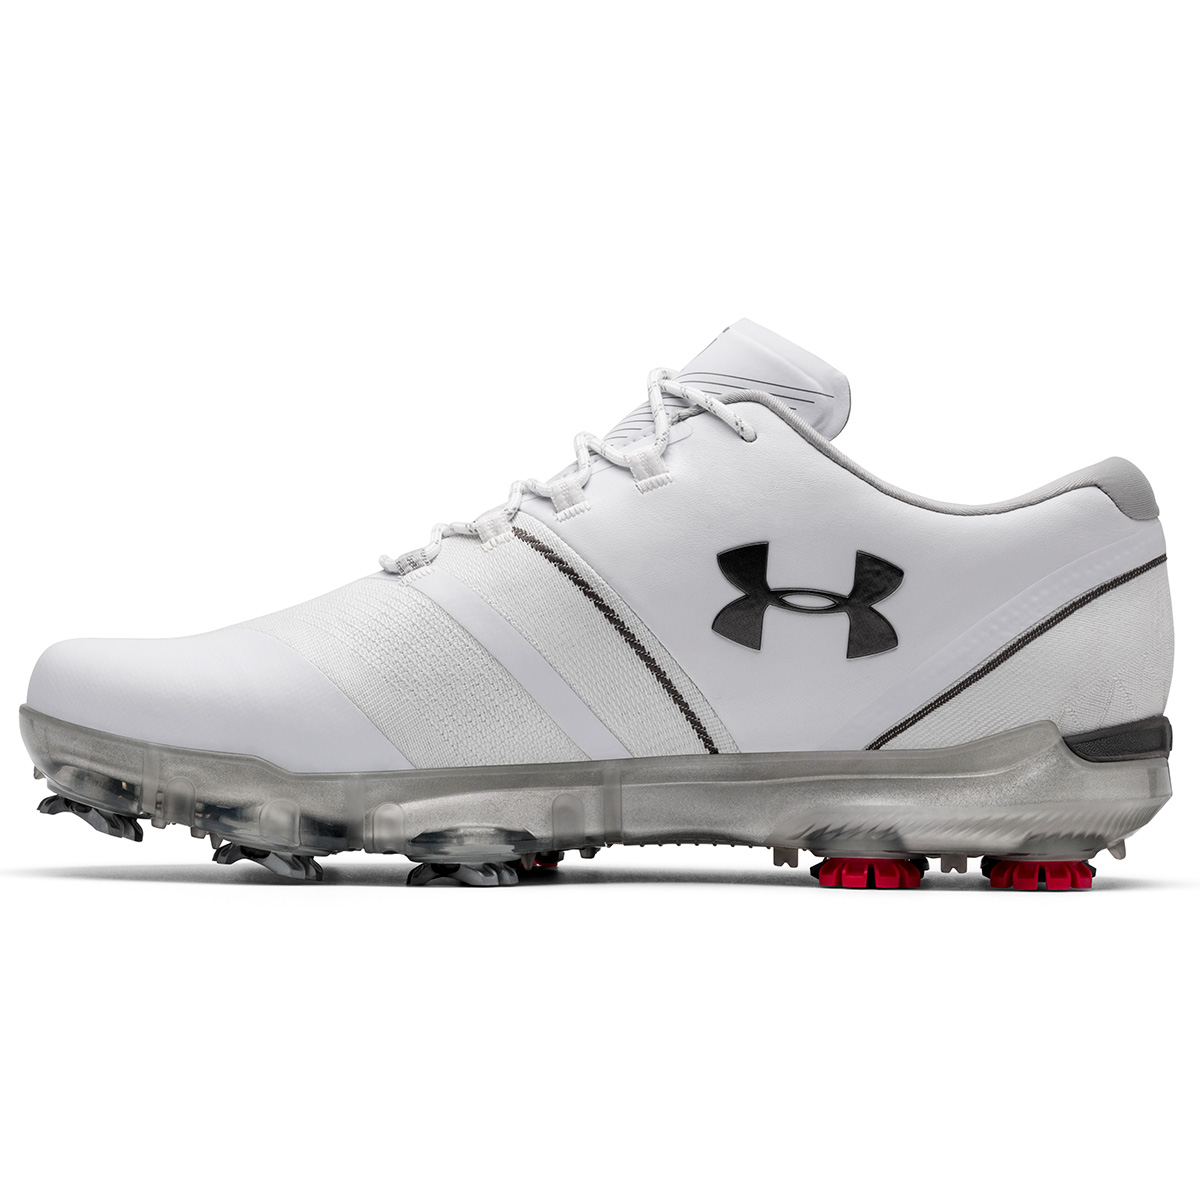 e8e5b1bc83d1b0 Under Armour Spieth 3 Shoes from american golf